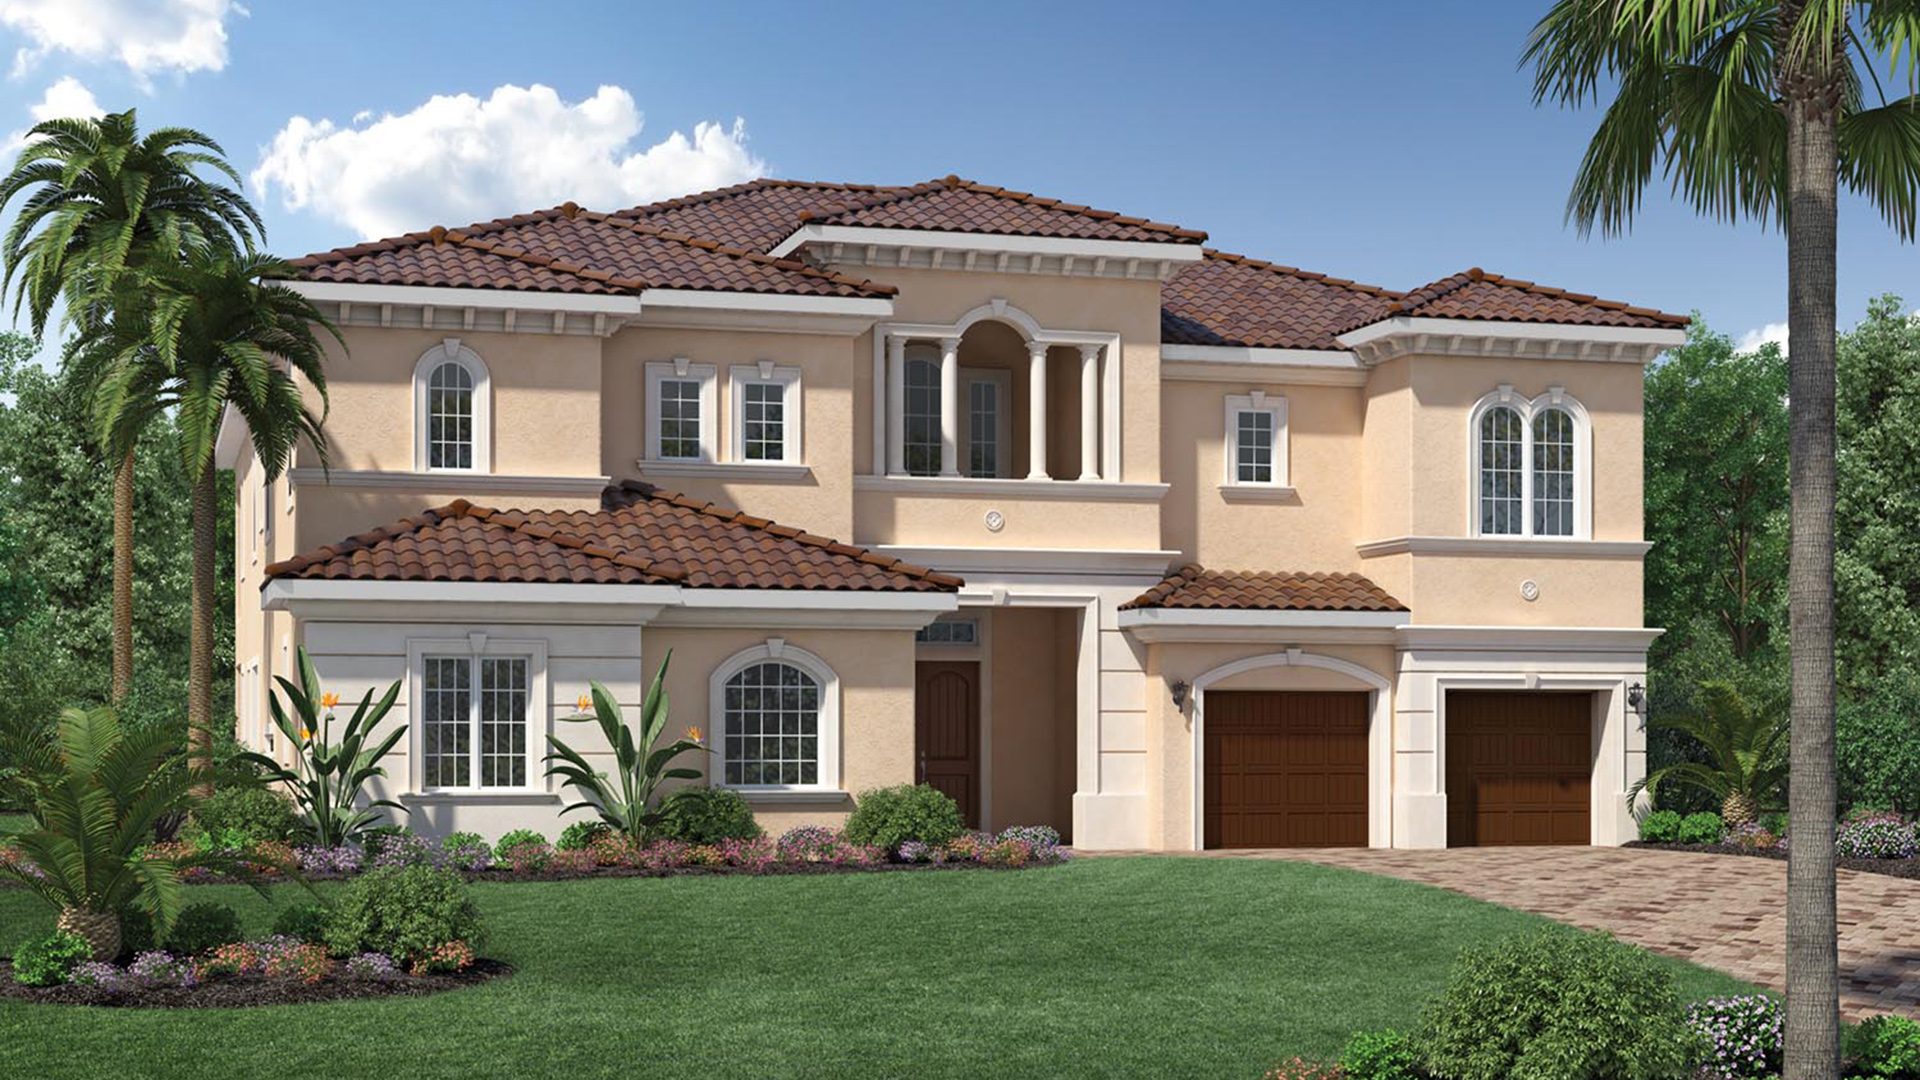 Jupiter country club the signature collection the for The country home collection